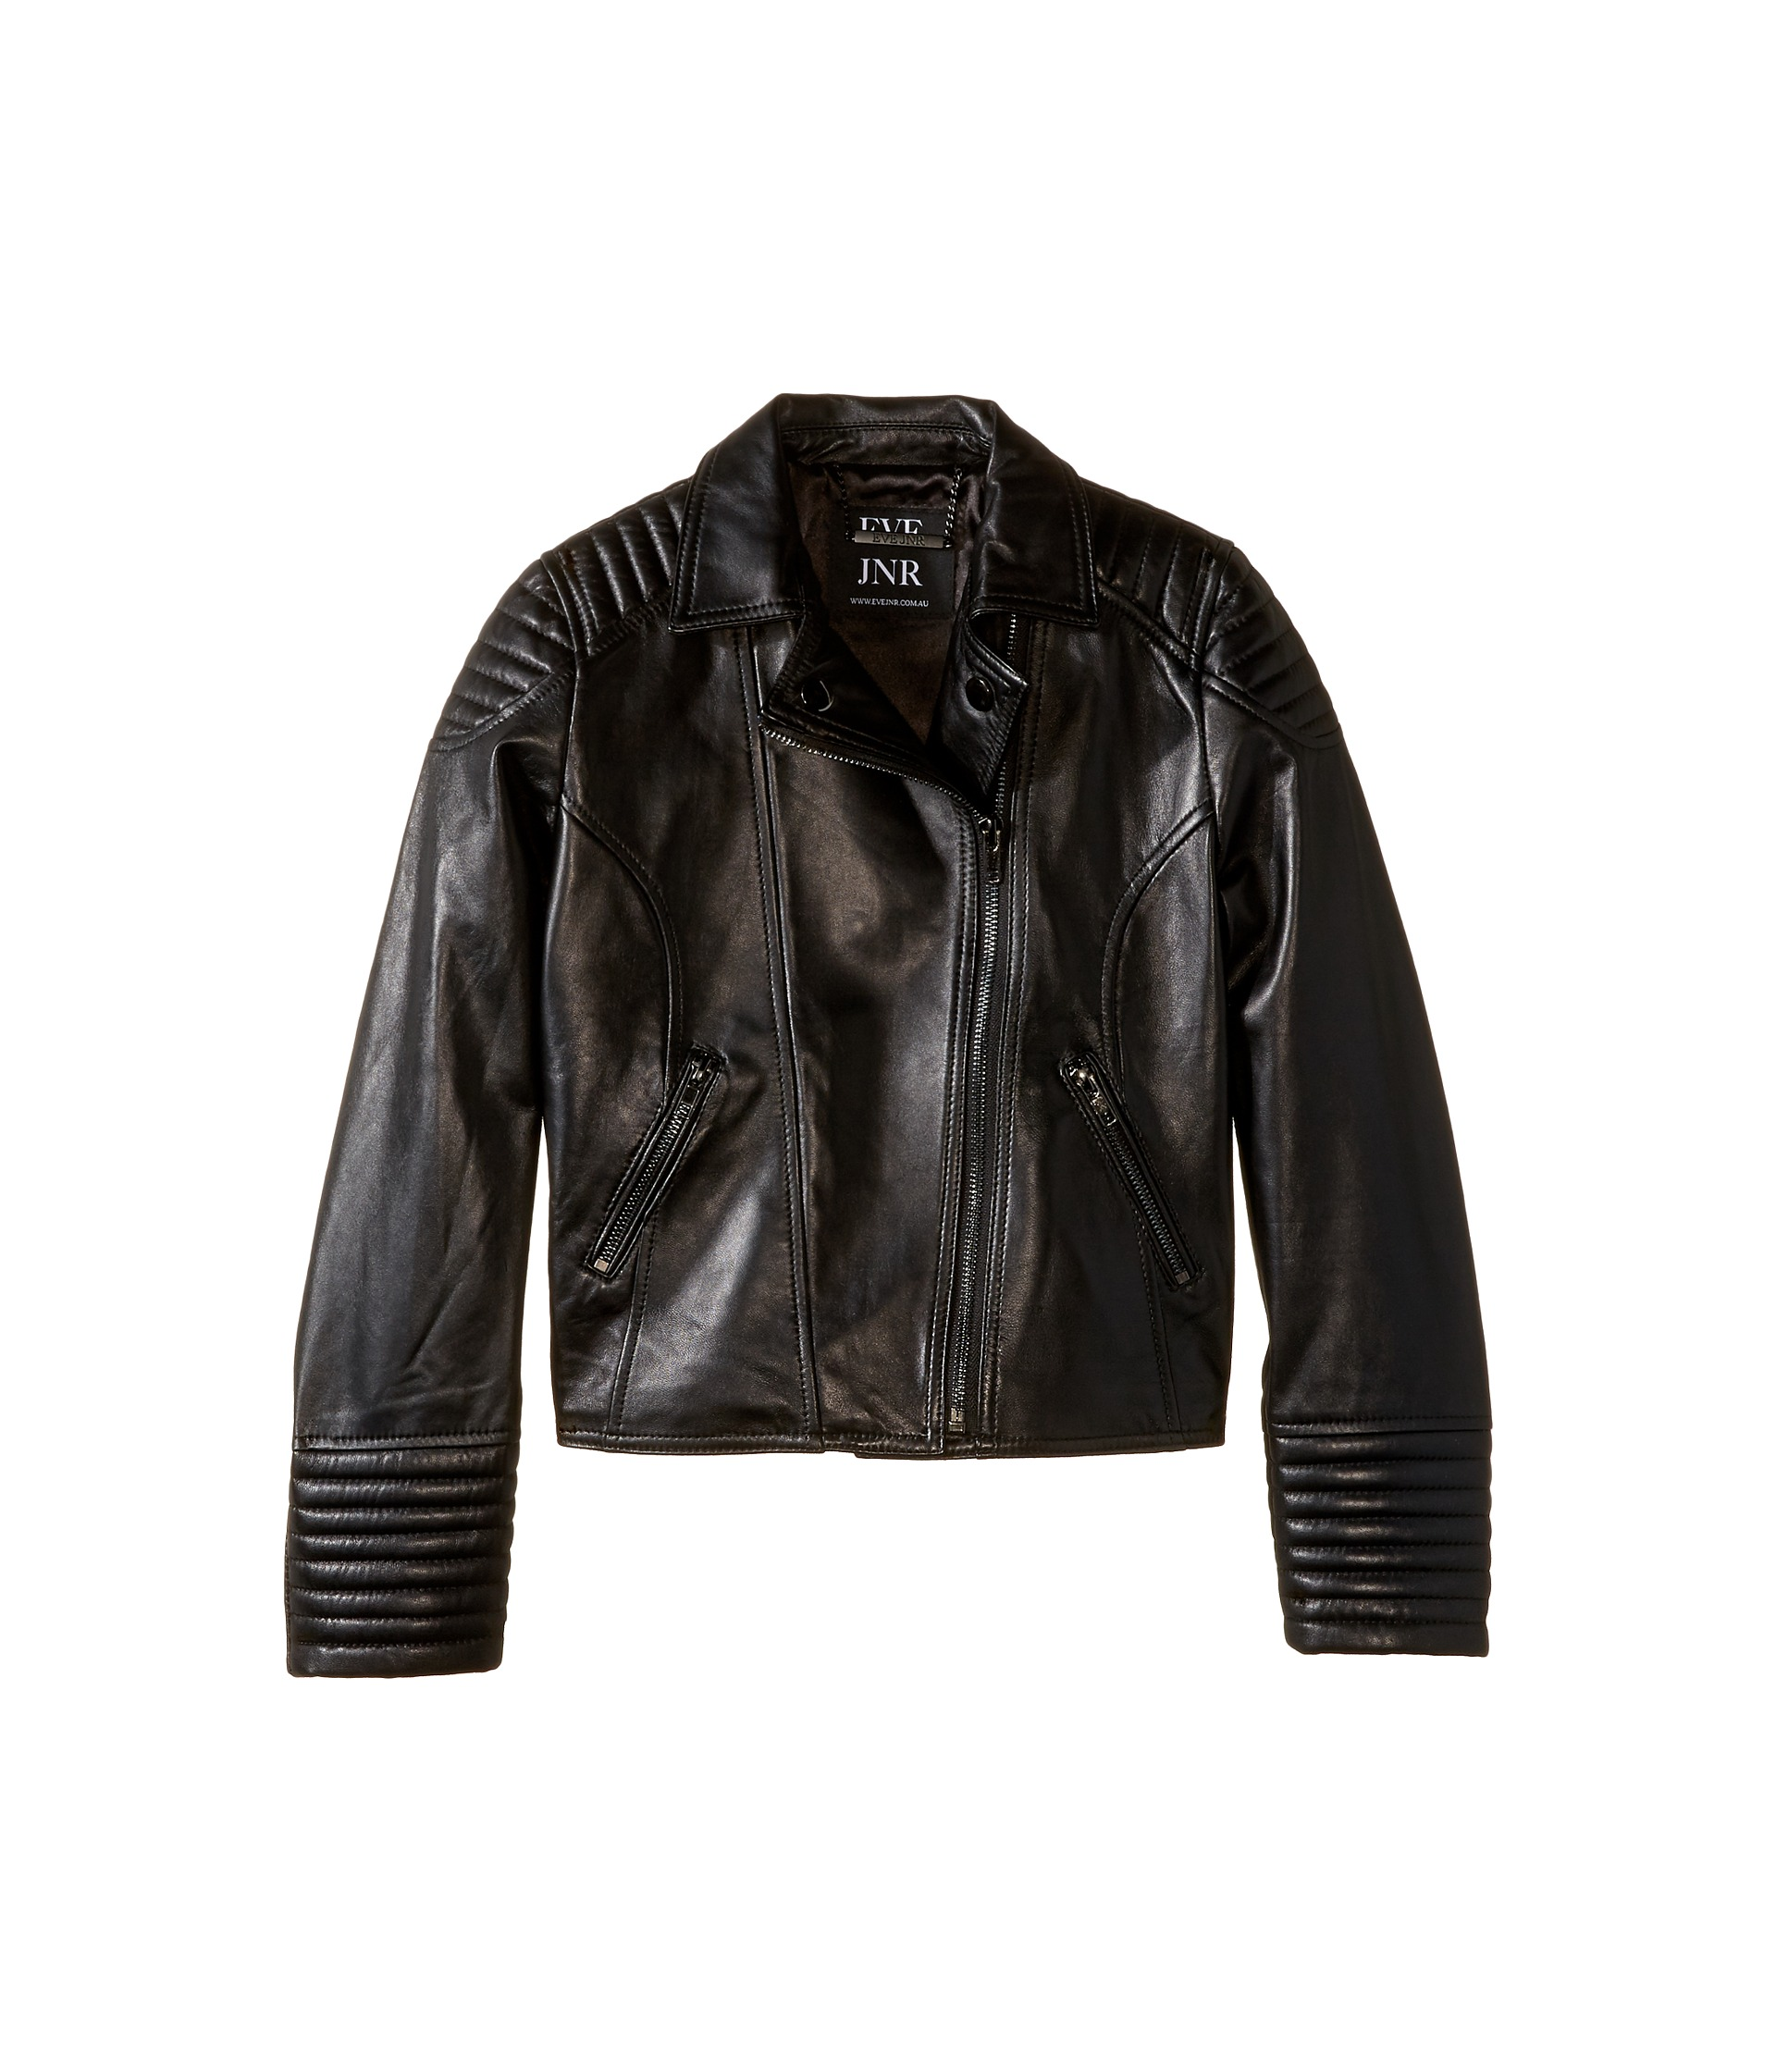 All about eve leather jacket